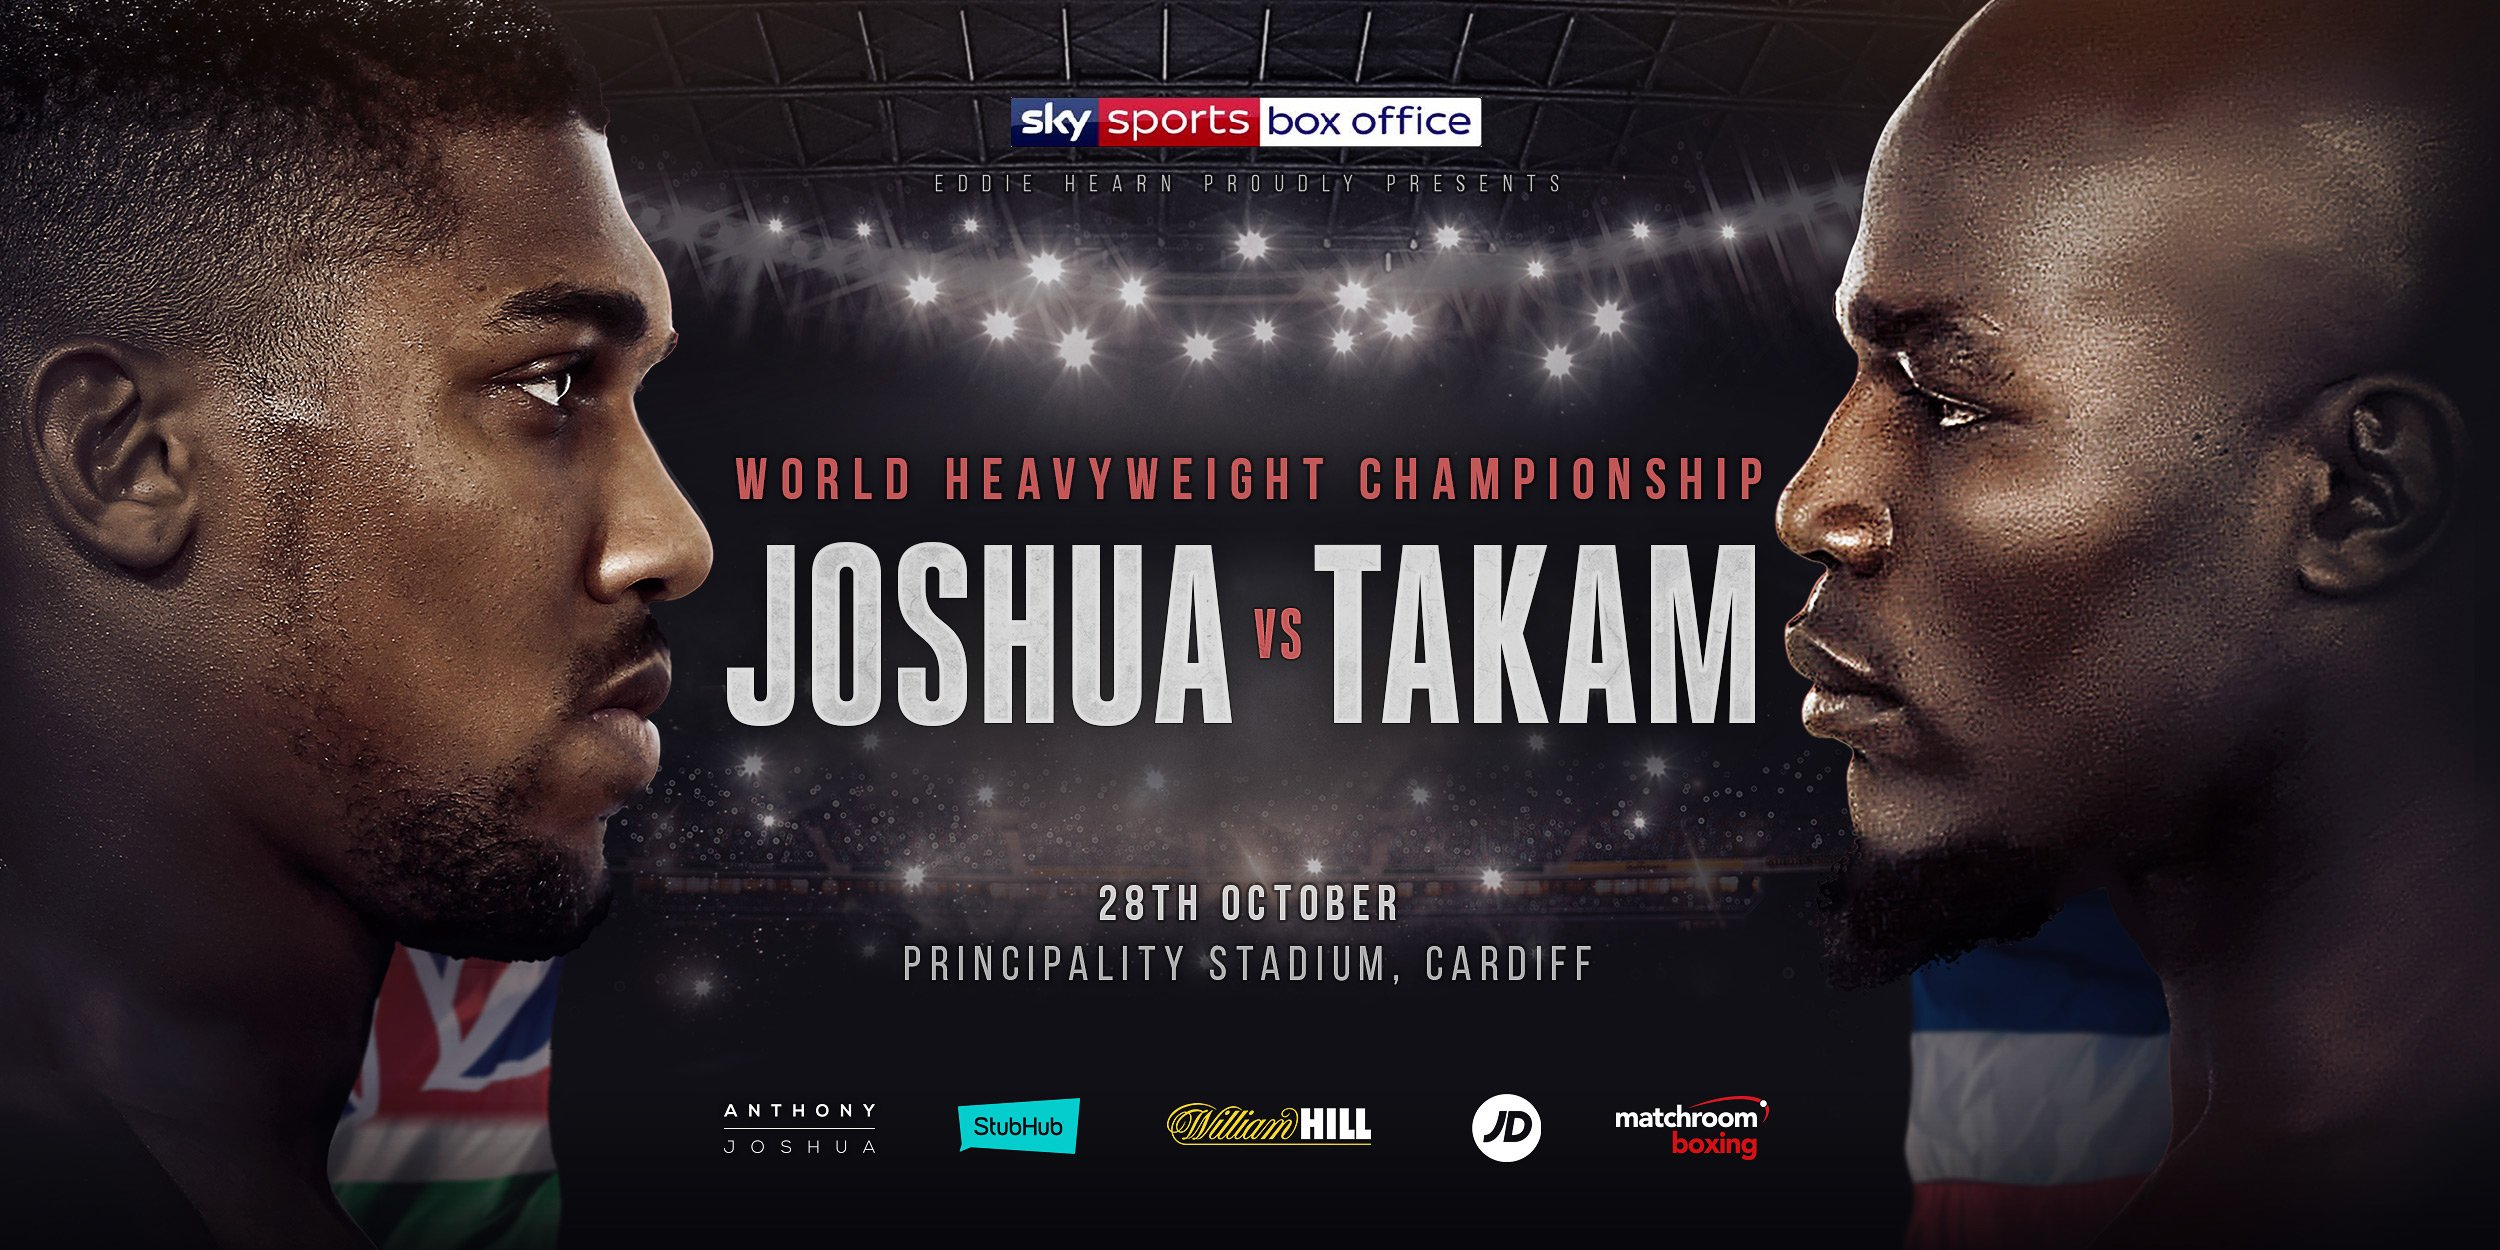 joshua - takam tv3 viaplay